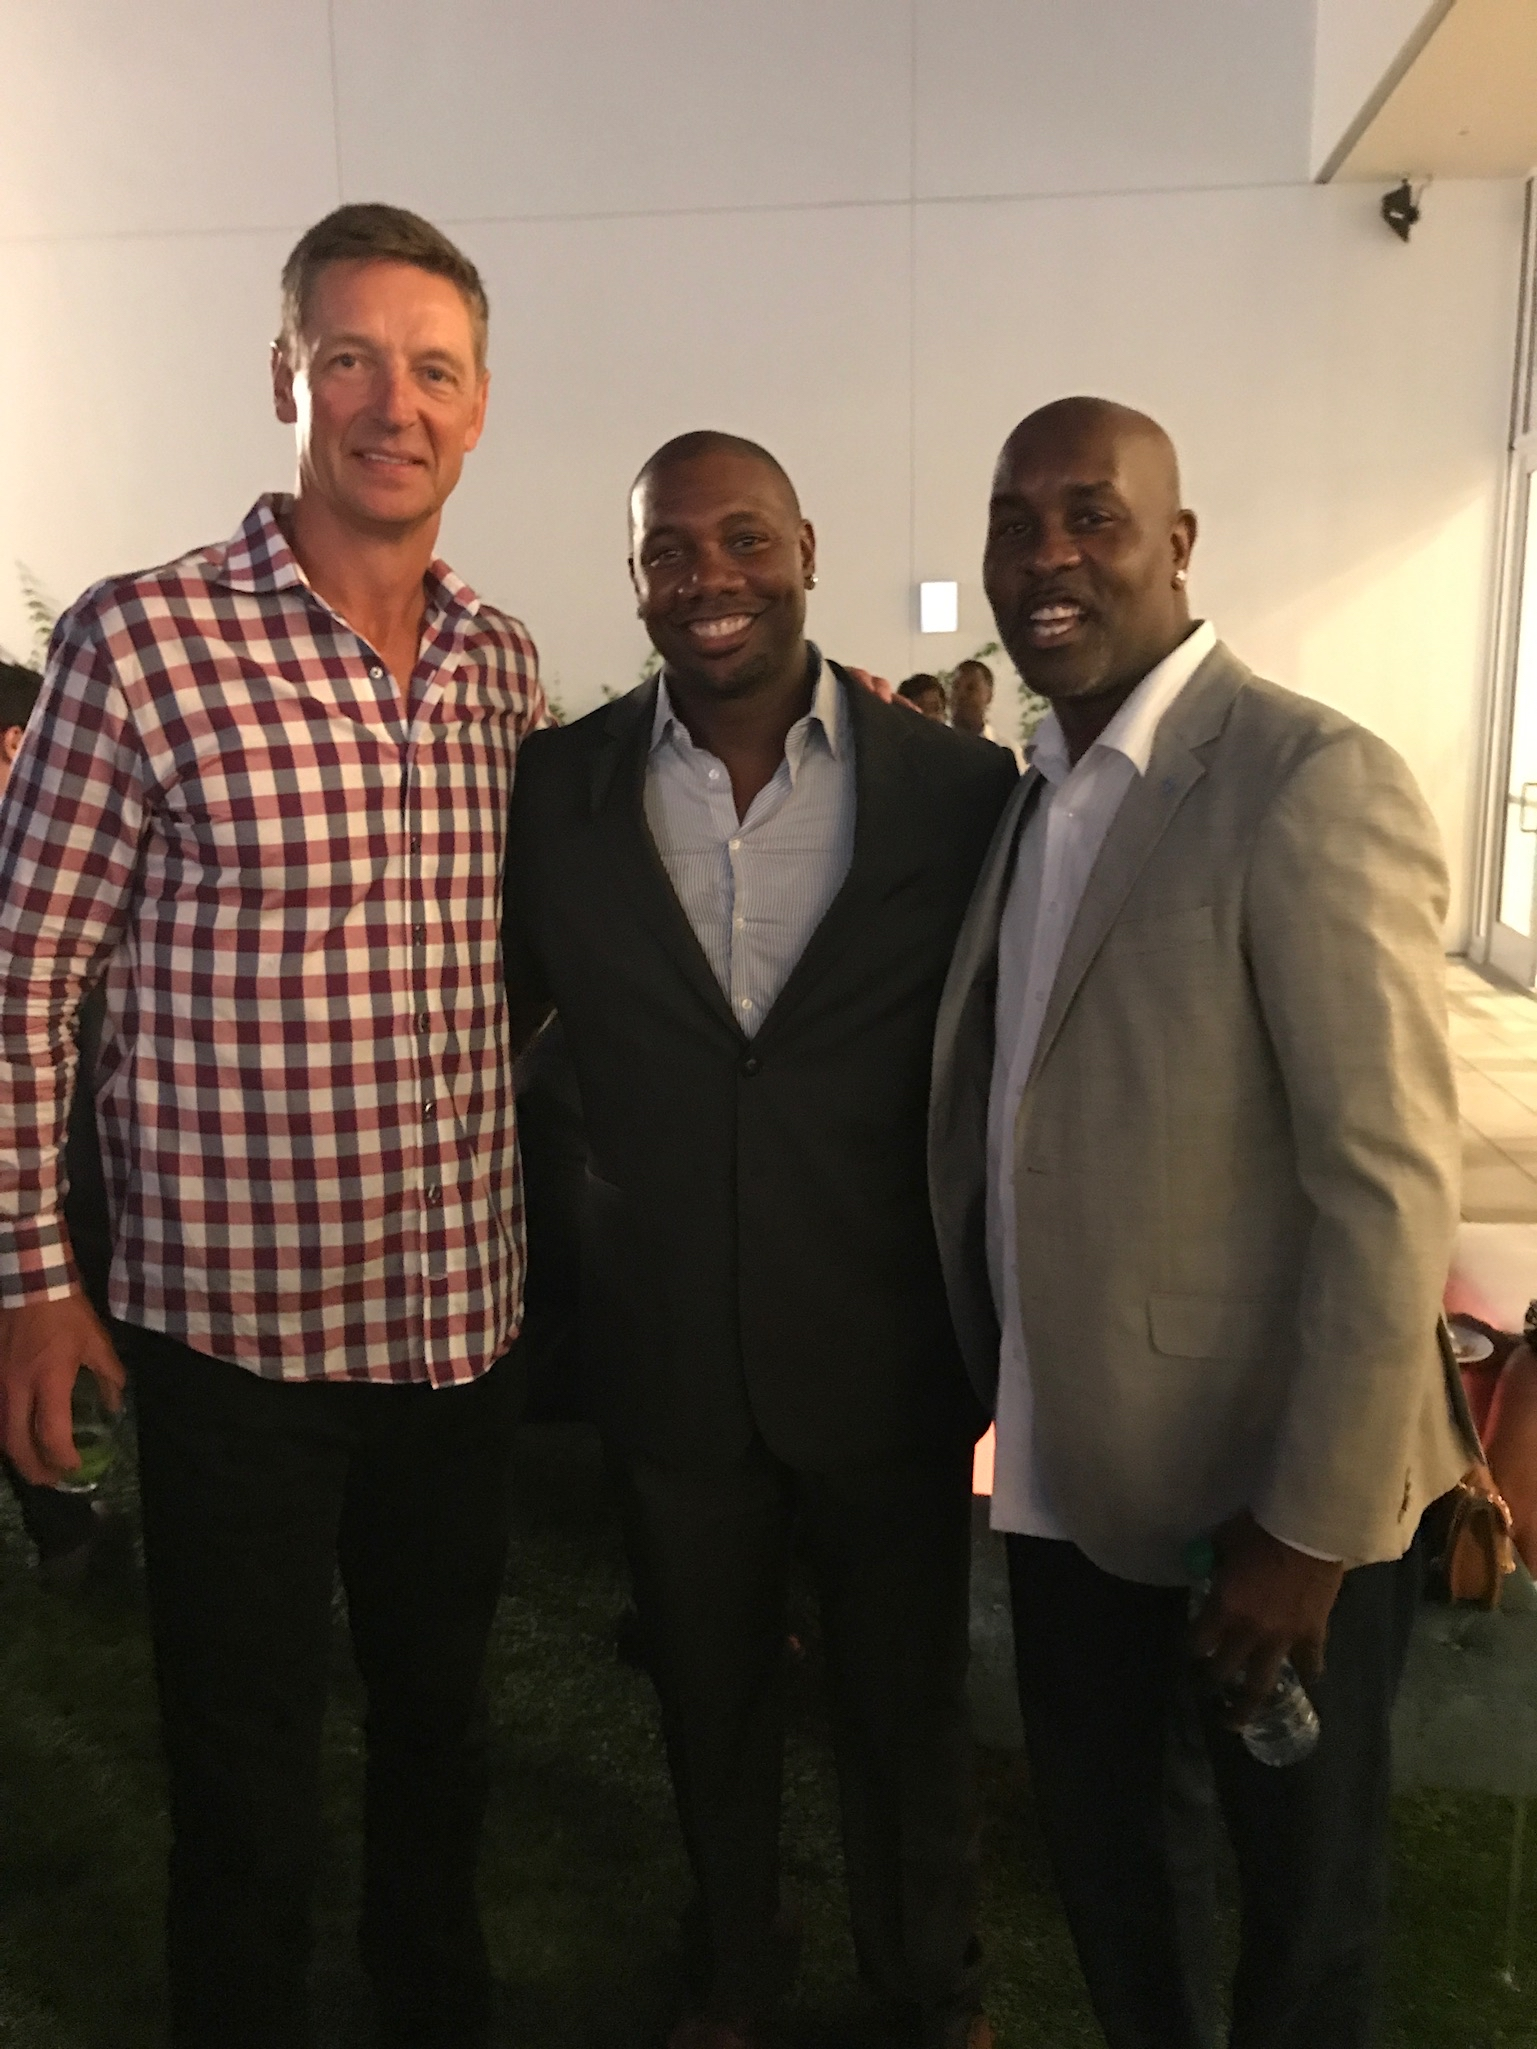 Detlef Schrempf, Ryan Howard and Gary Payton